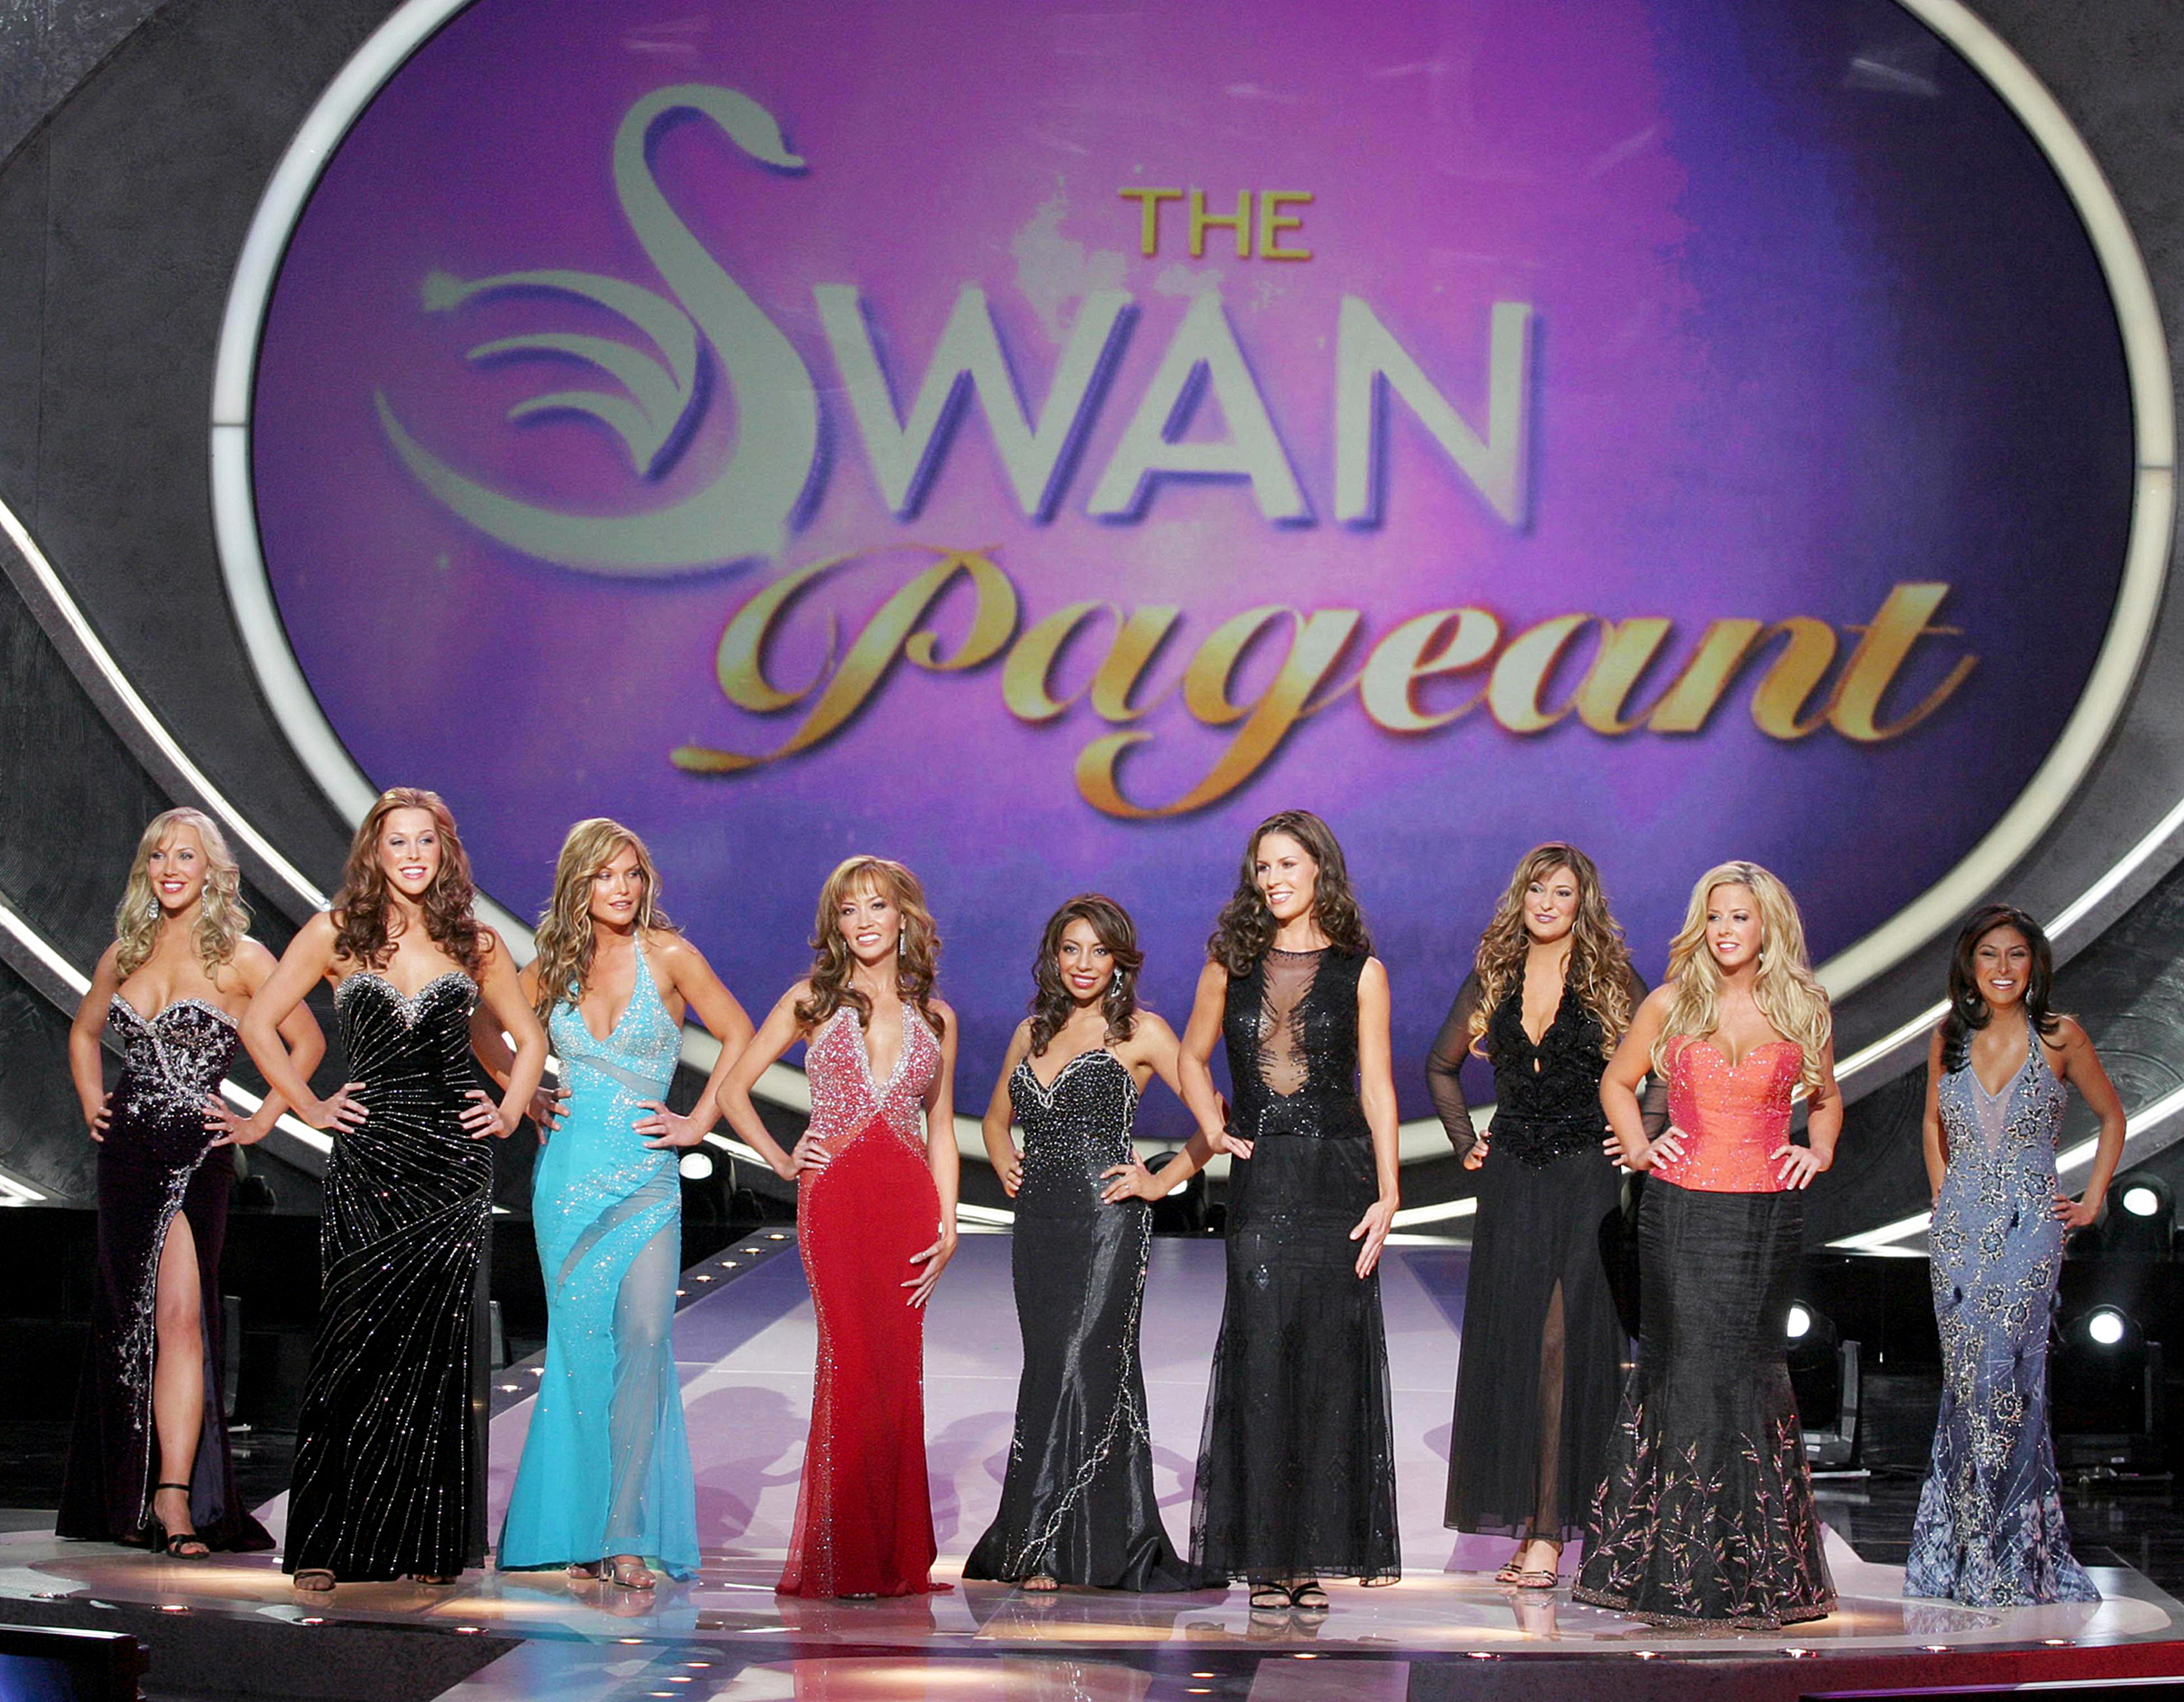 In April 2004, Fox takes reality trash too far with its sadistic pageant The Swan.